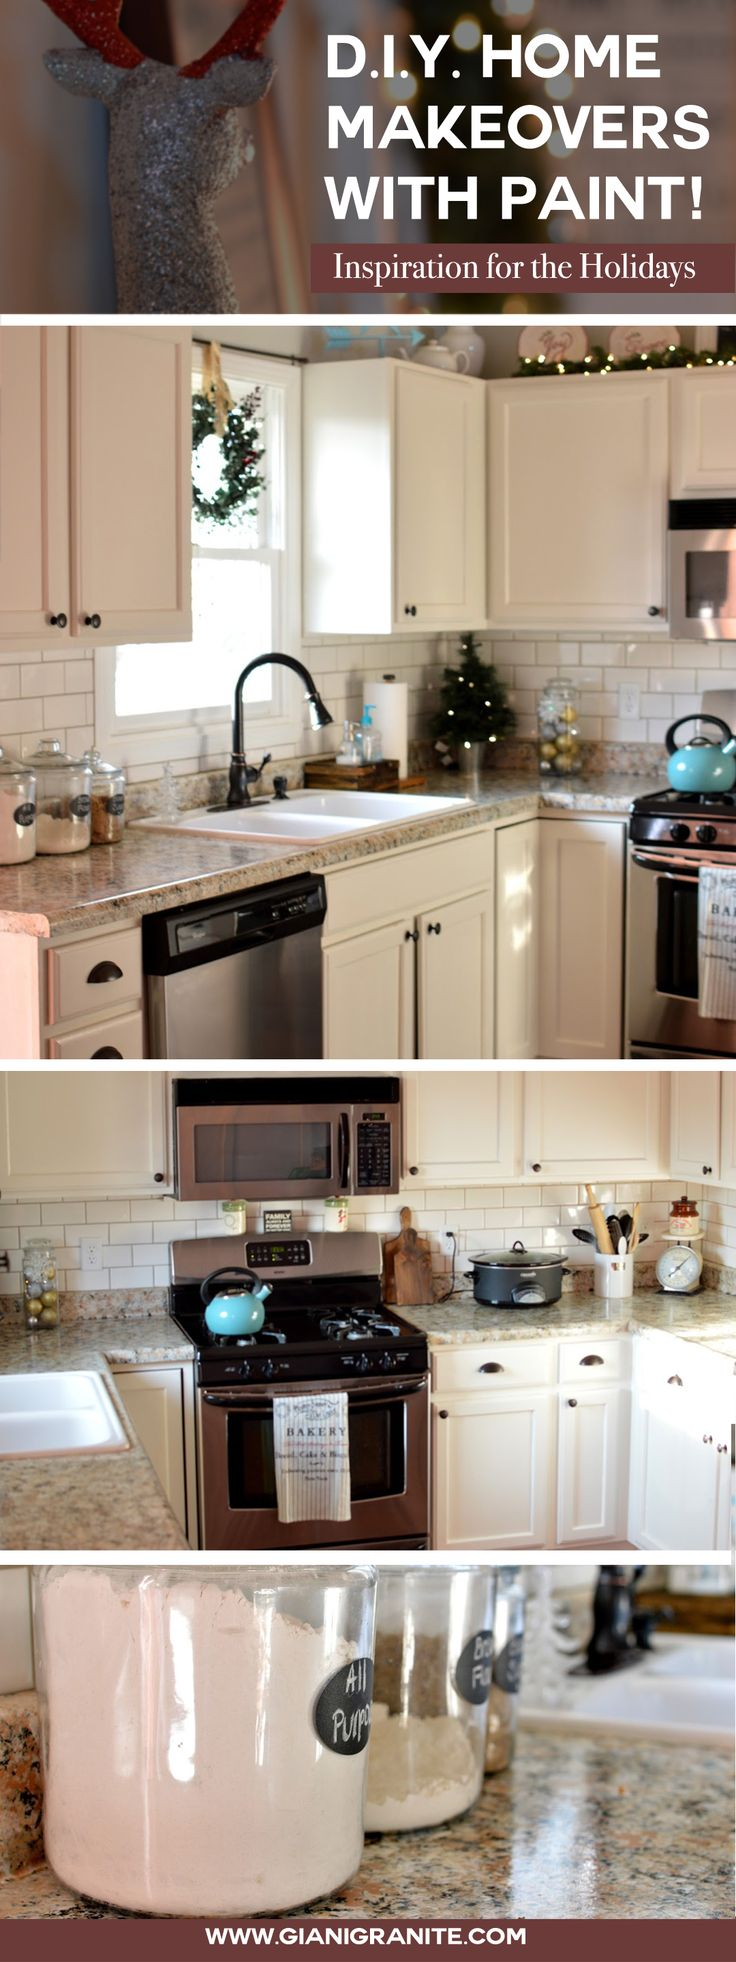 277 Best Images About Giani Granite Countertop Paint On Pinterest Faux Granite Countertops